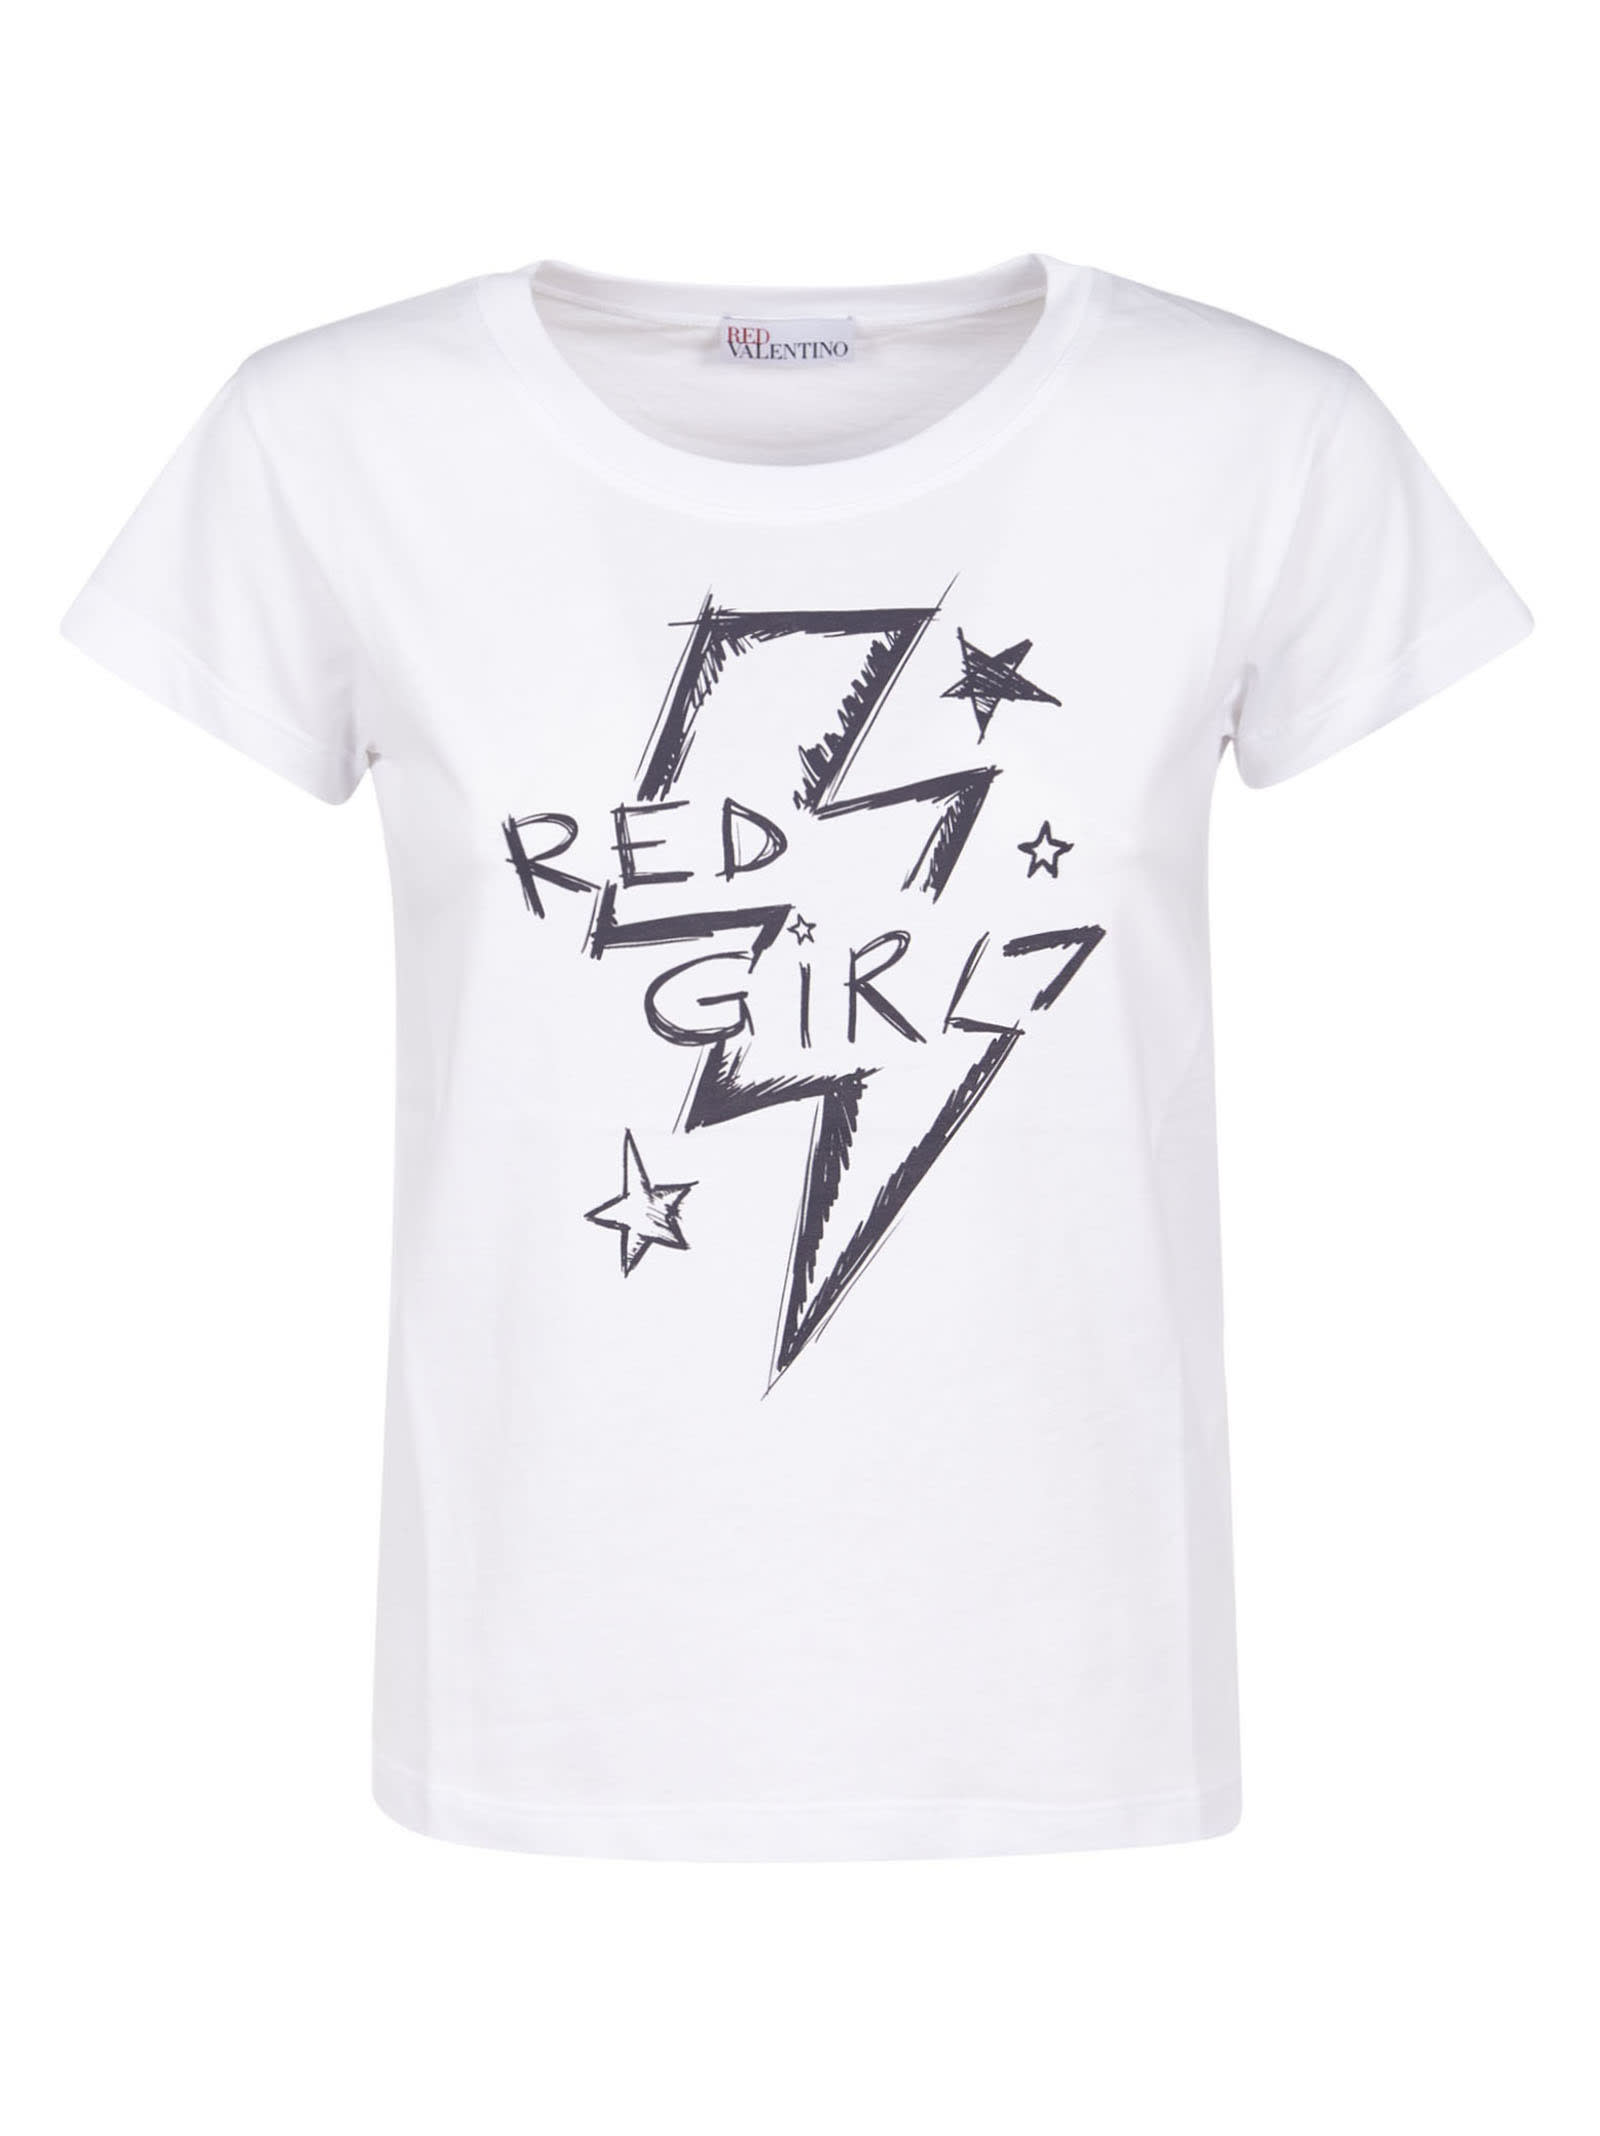 Red Girl Printed T-shirt from RED ValentinoComposition: 100% Cotton